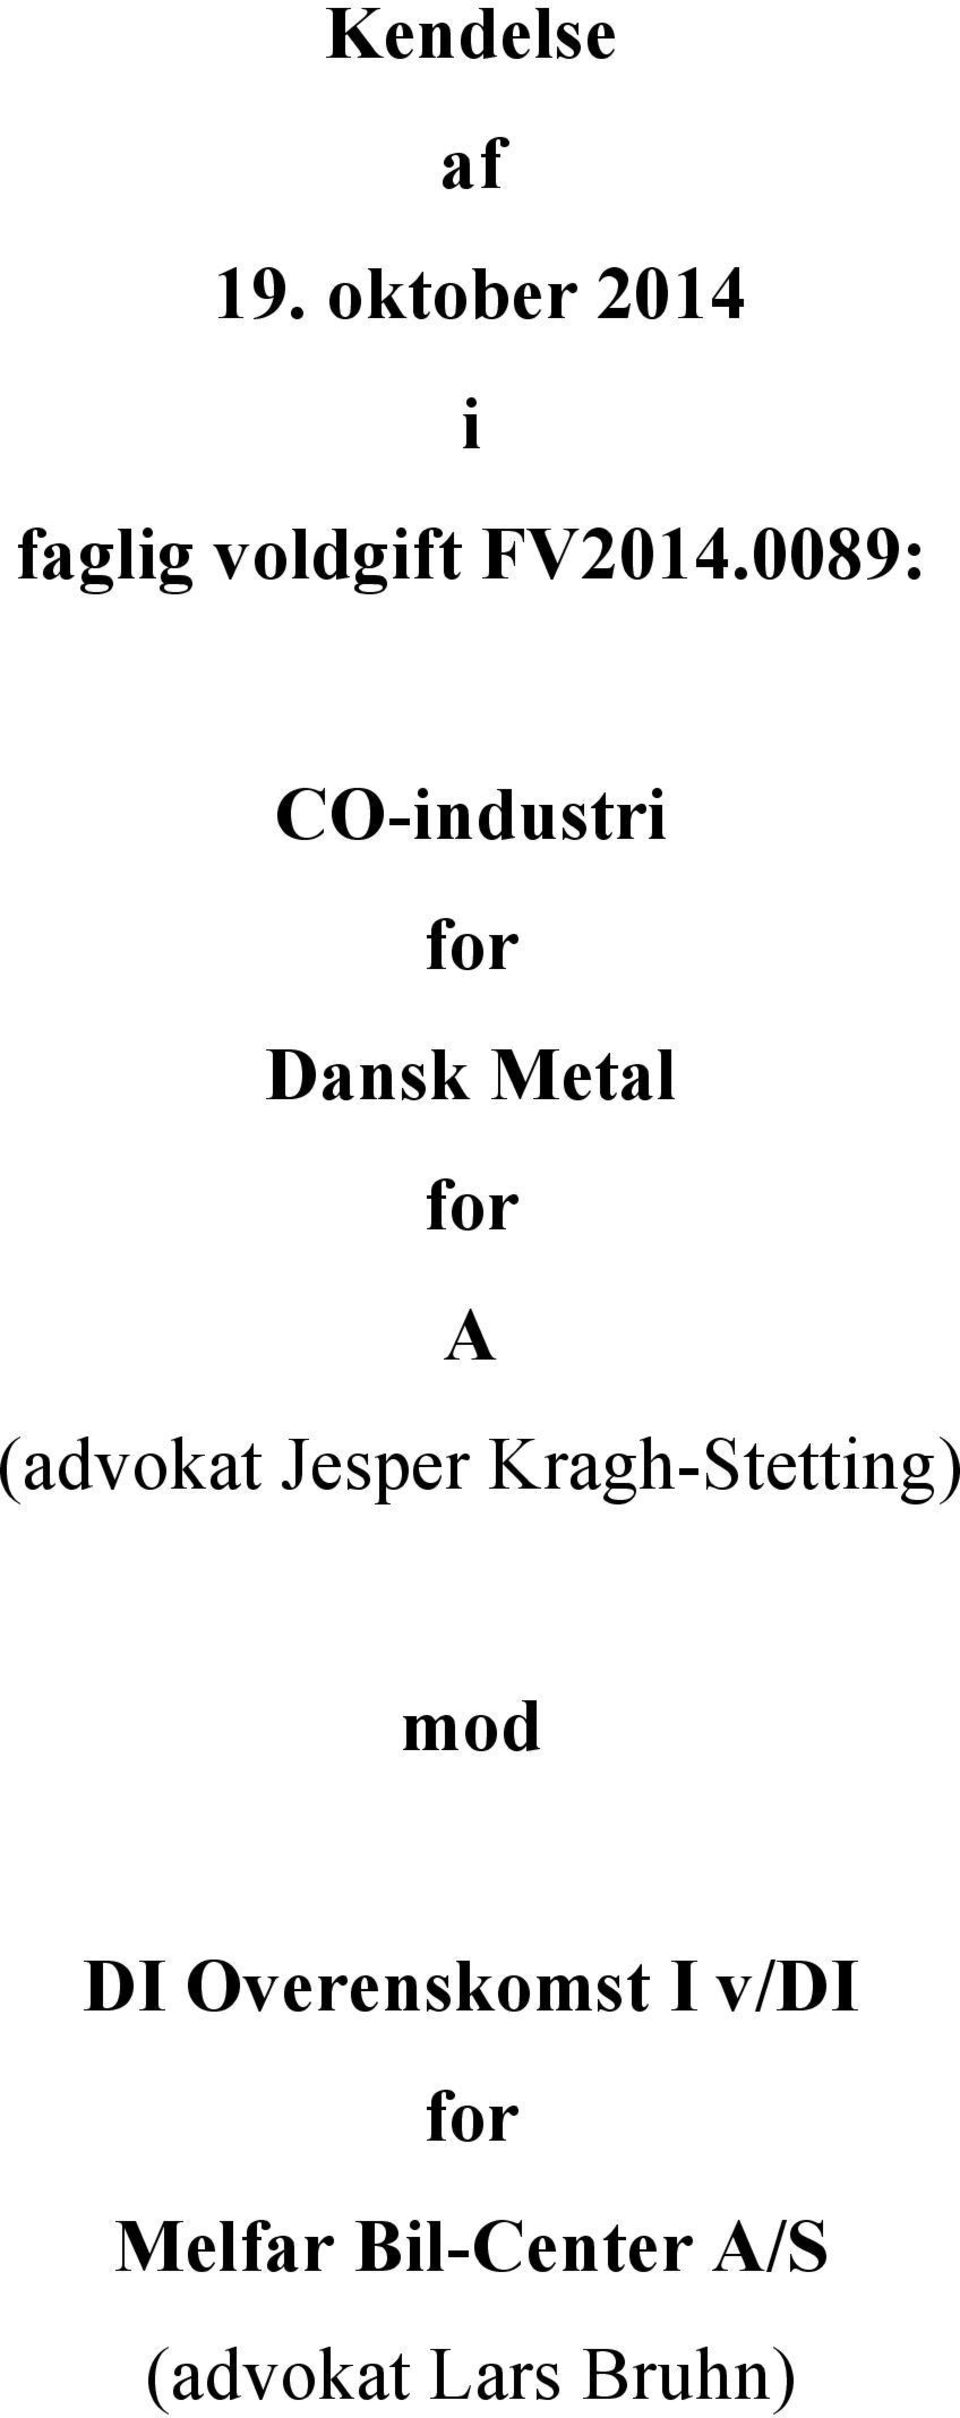 0089: CO-industri for Dansk Metal for A (advokat